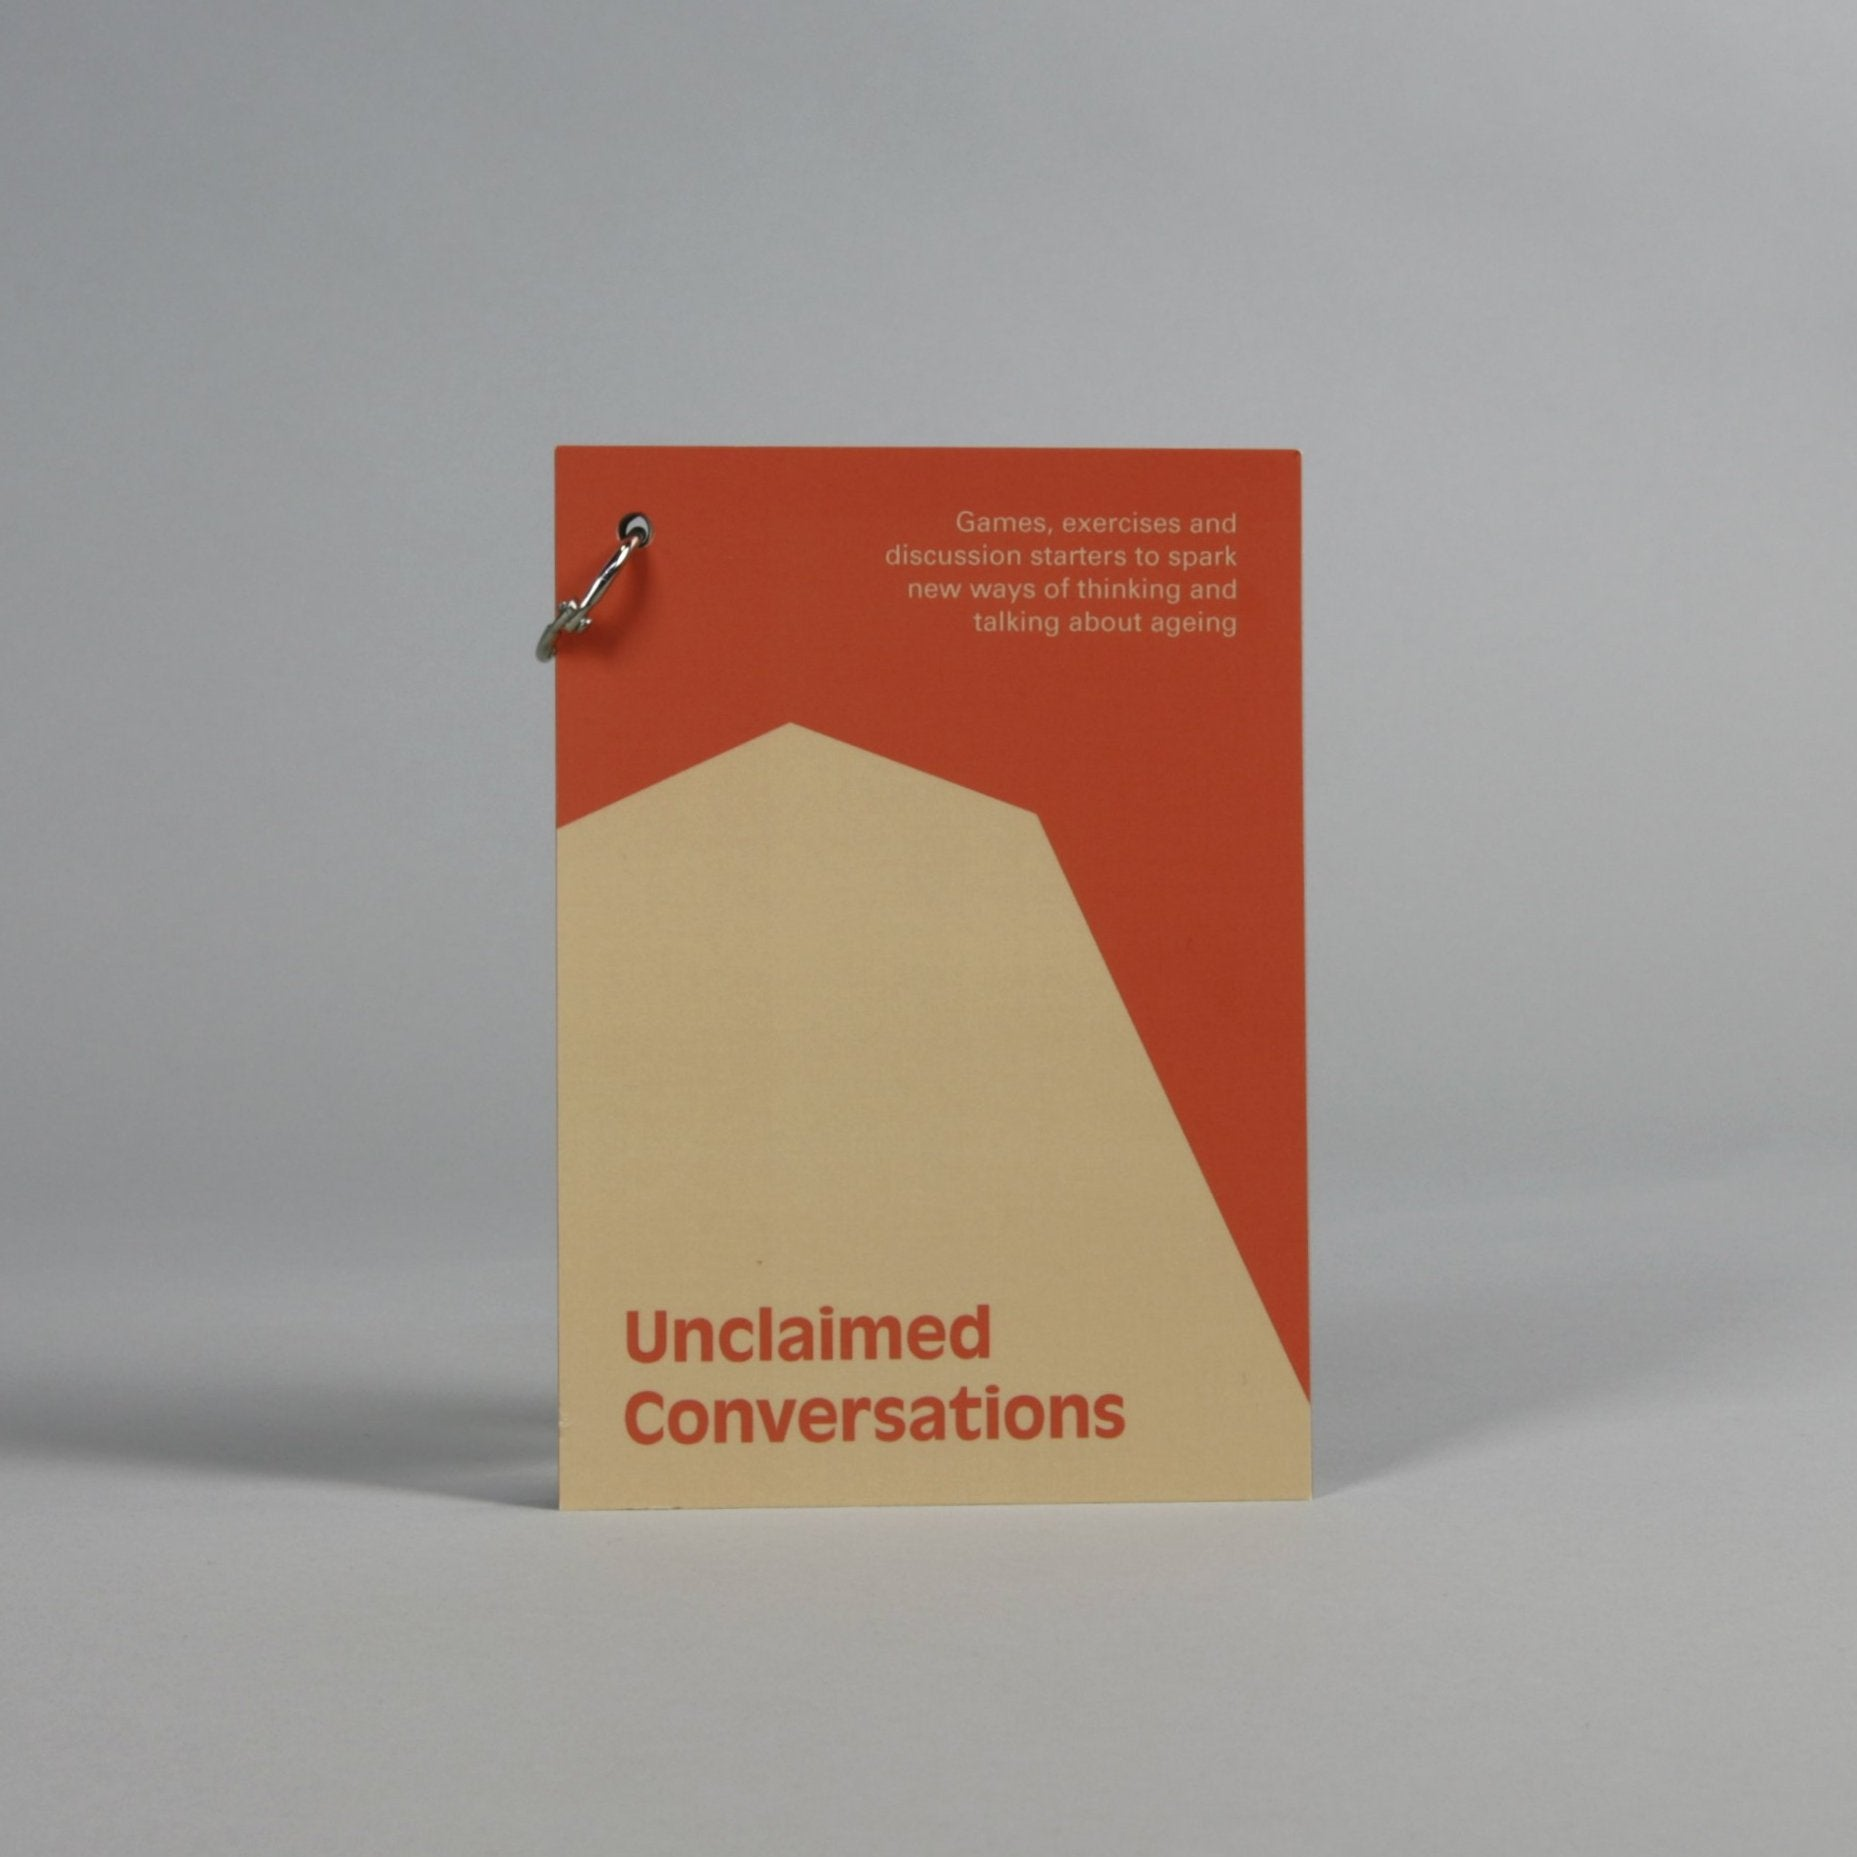 Unclaimed Conversation Cards